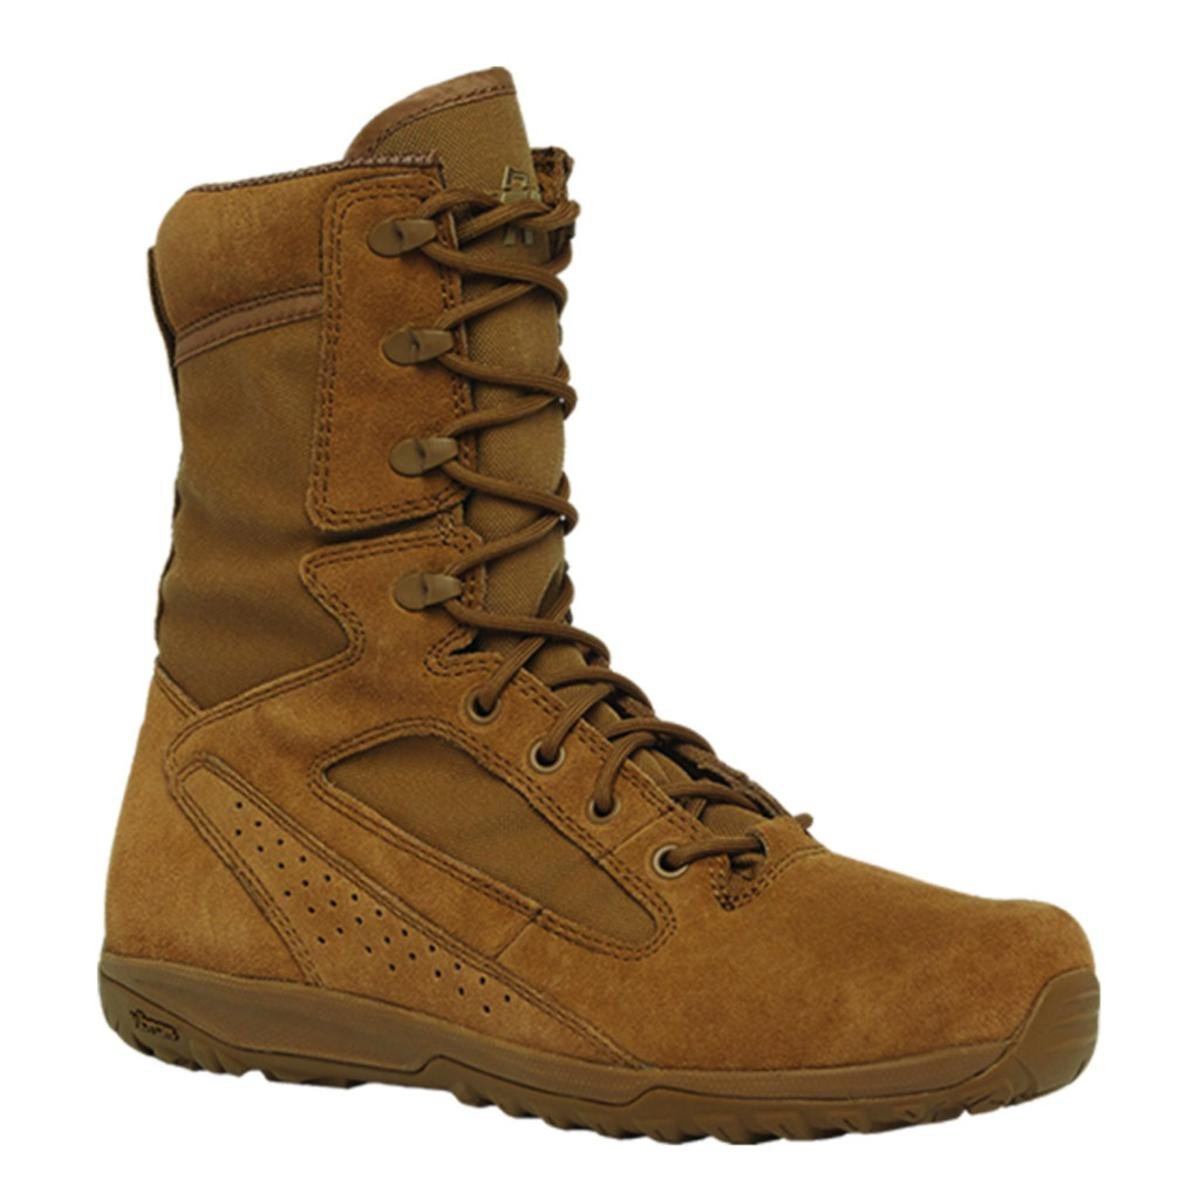 Tactical Research Belleville TR511 Mini-Mil Transition Boot, Coyote Brown, 13